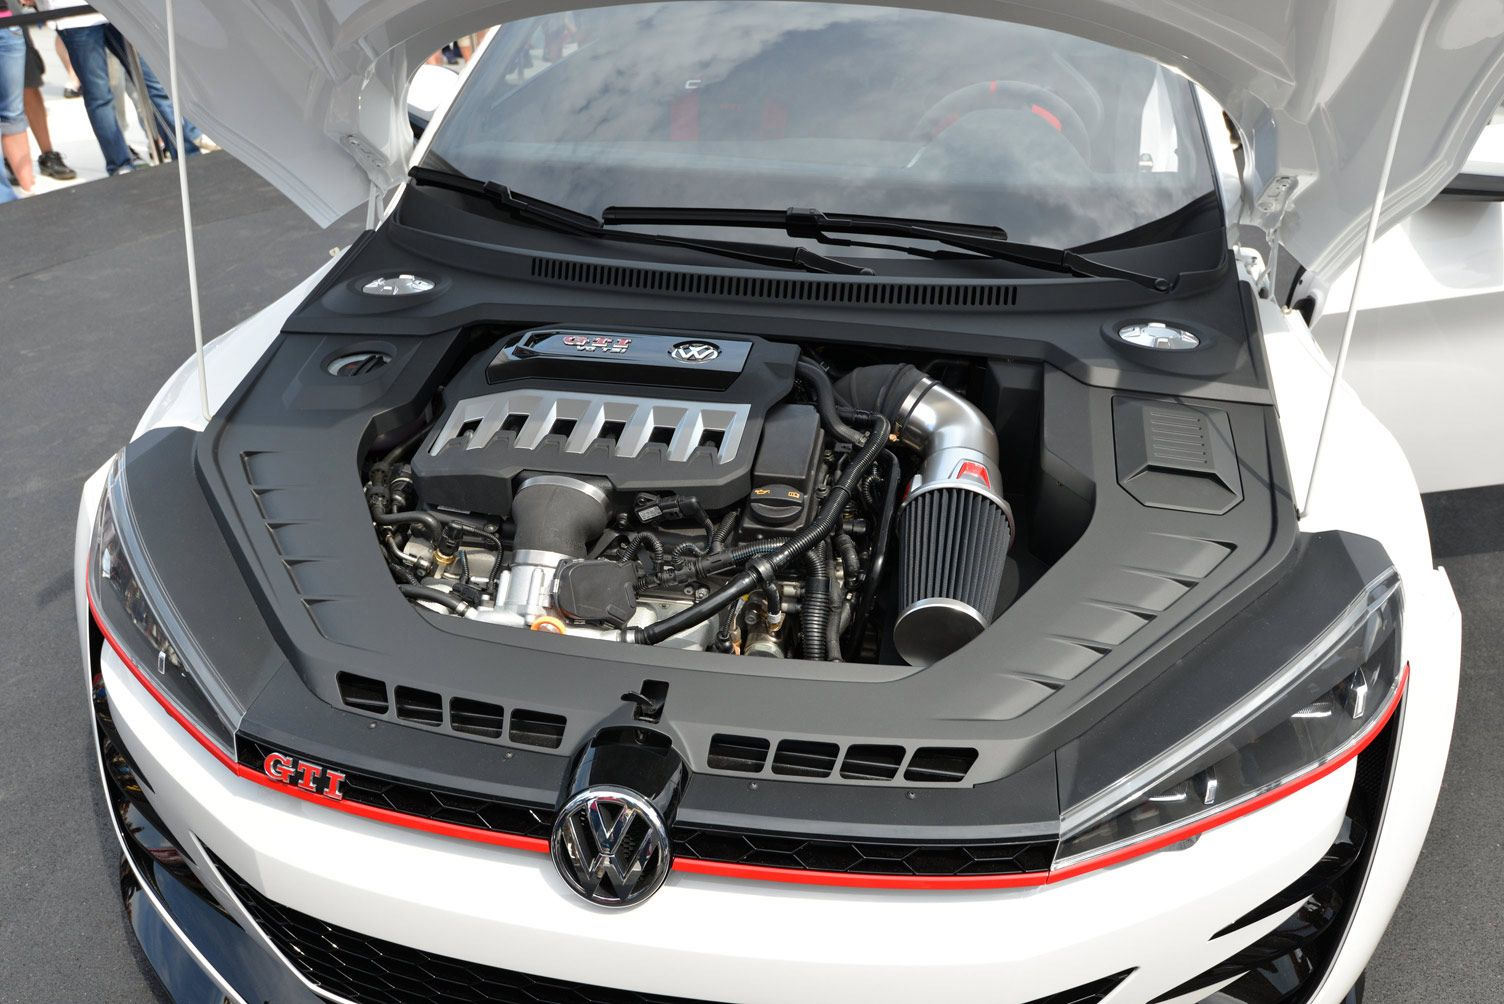 hight resolution of gti debut in w rthersee volkswagen showed us a new vr6 this 3 0l 24v six cylinder could possibly replace the current 3 6l seen in such models like the